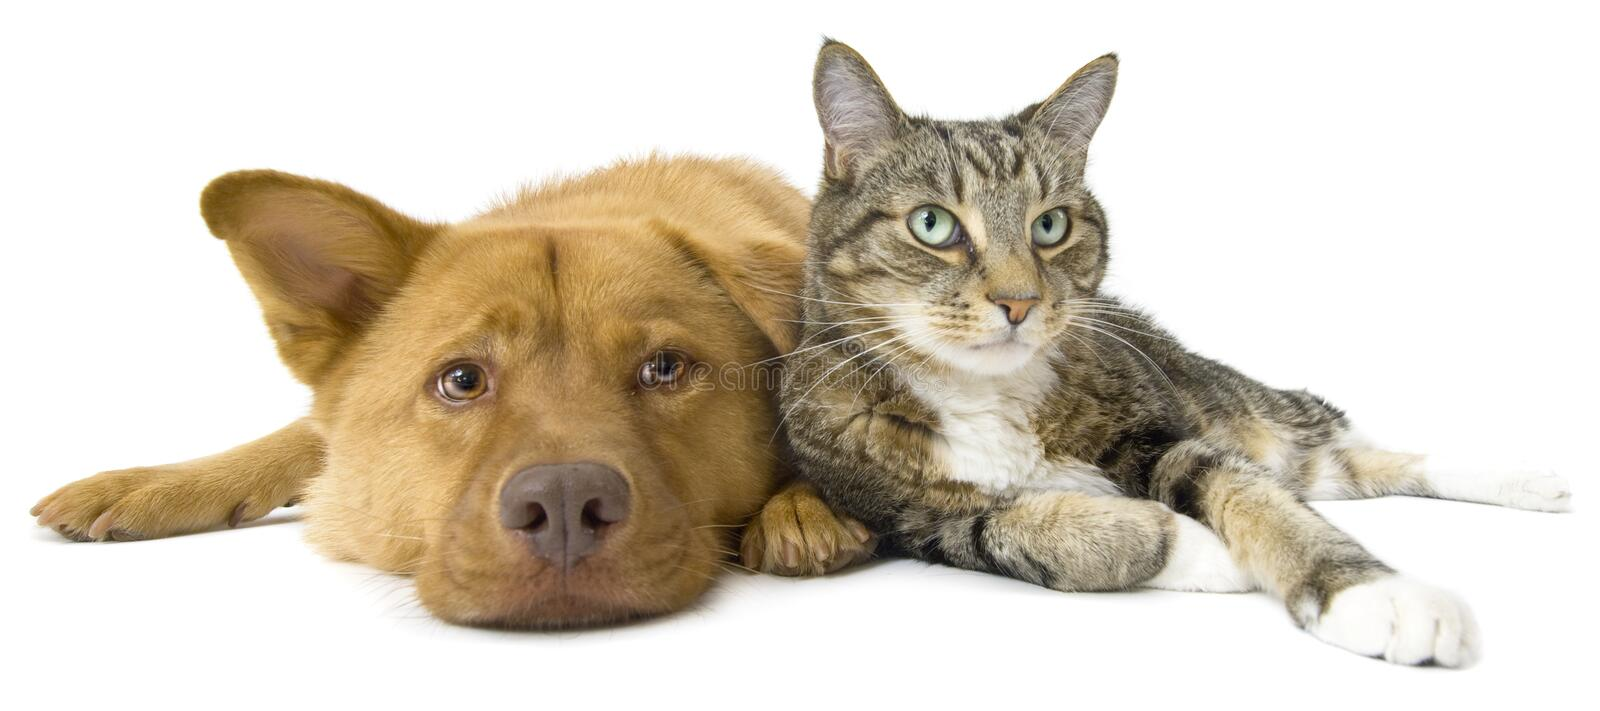 Dog and Cat together wide angle stock photo